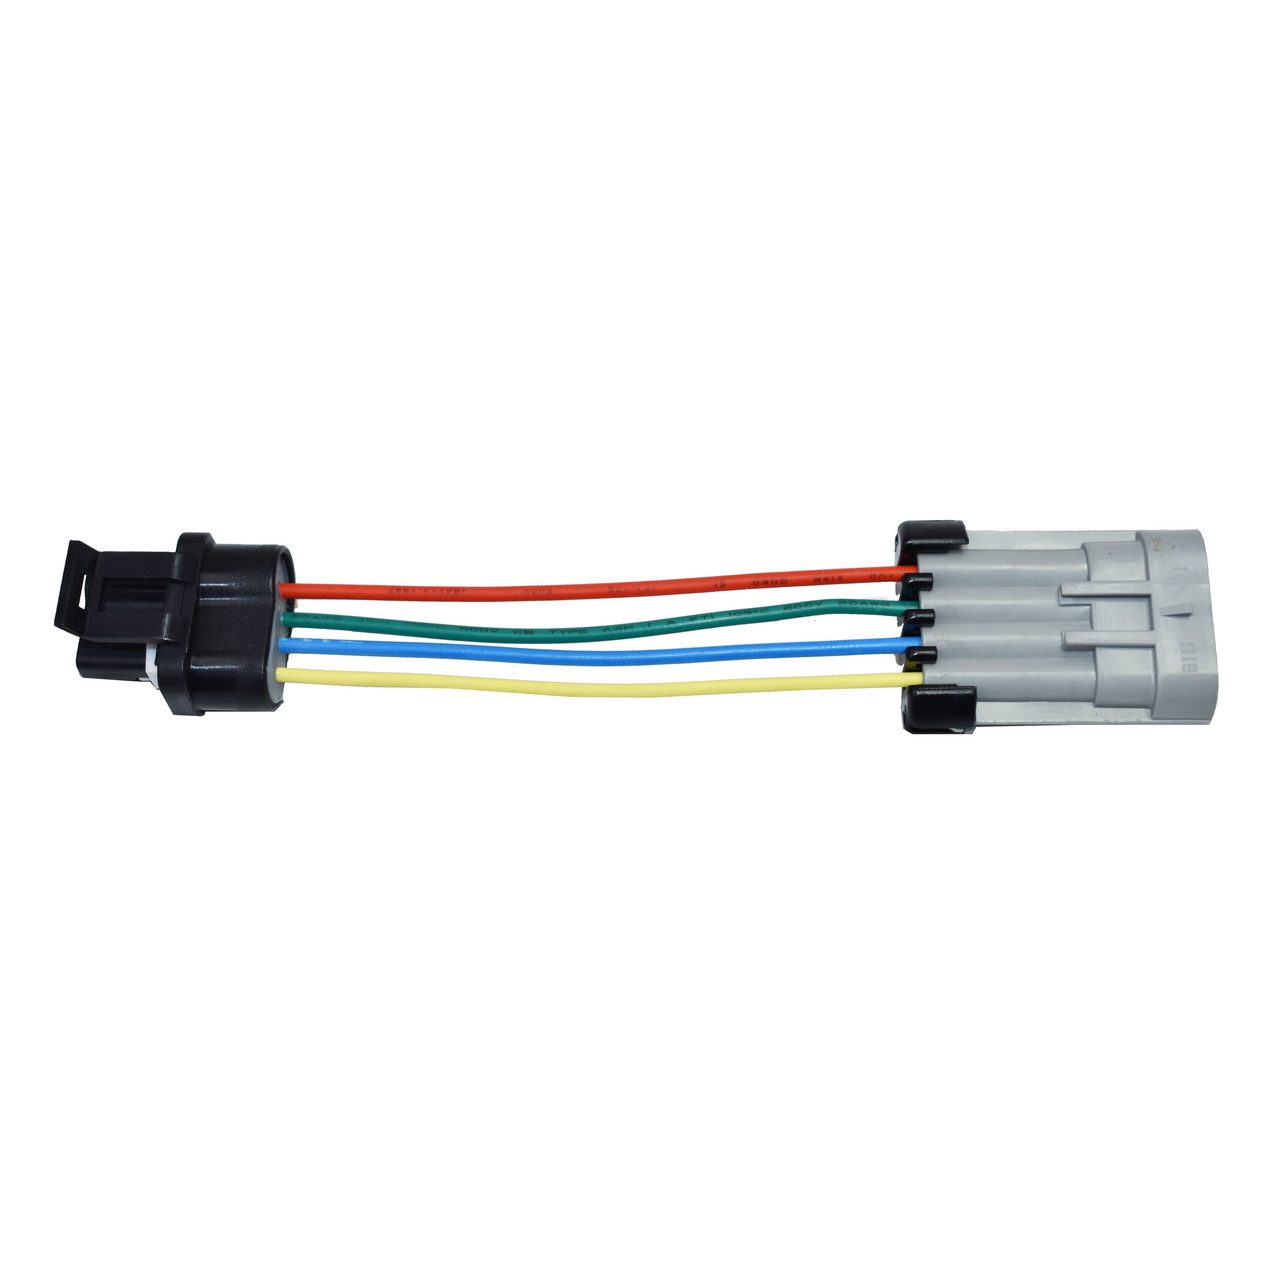 A-Team Performance 4 Pin Alternator Conversion Plug Harness Kit Compatible with GM Chevy CS130 to CS130D AD244 AD237